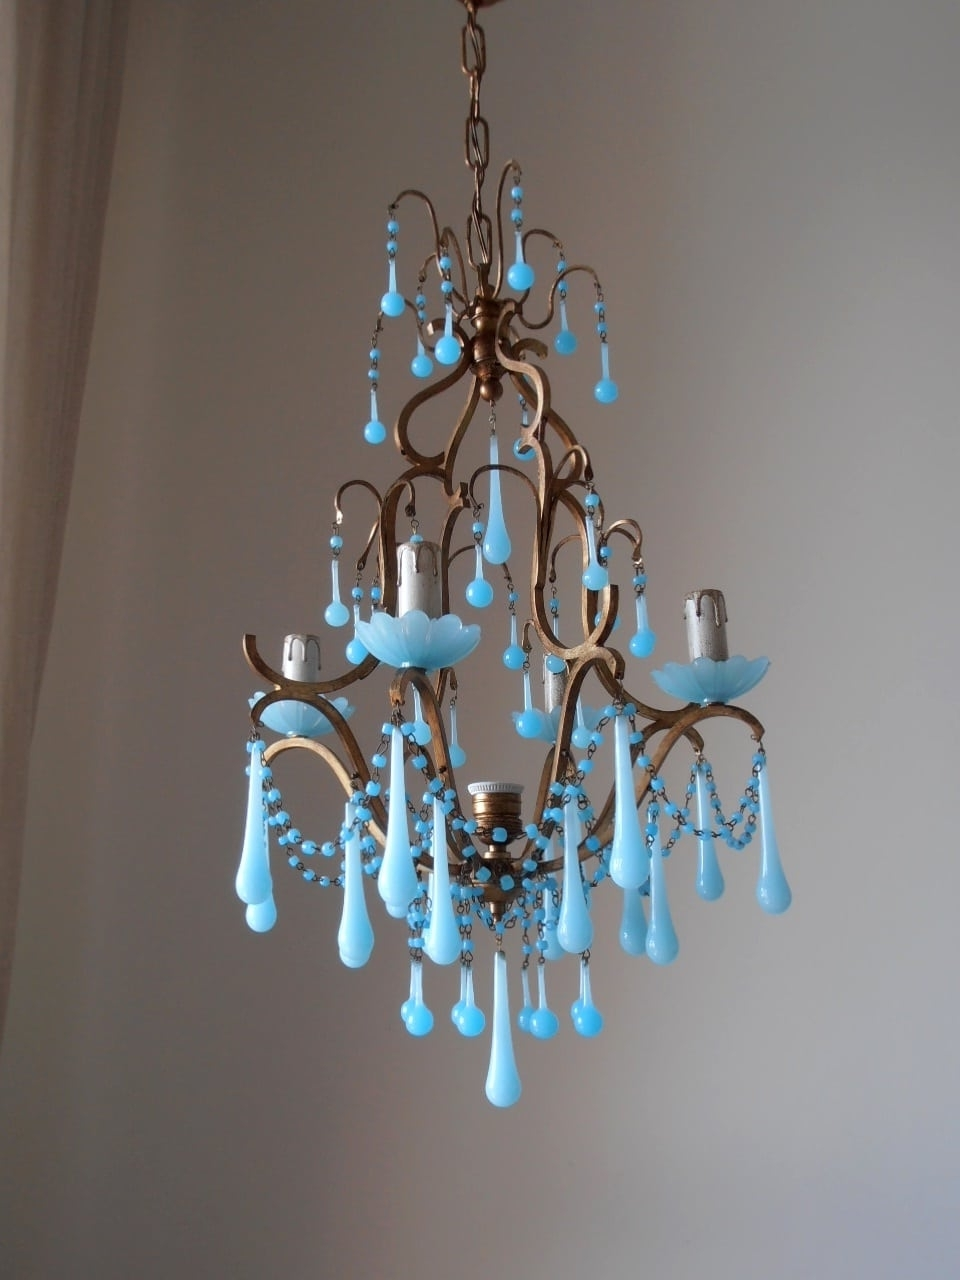 Turquoise Birdcage Chandeliers Pertaining To Current Italian Birdcage Chandelier With Blue Murano Opaline – Lorella Dia (View 5 of 15)